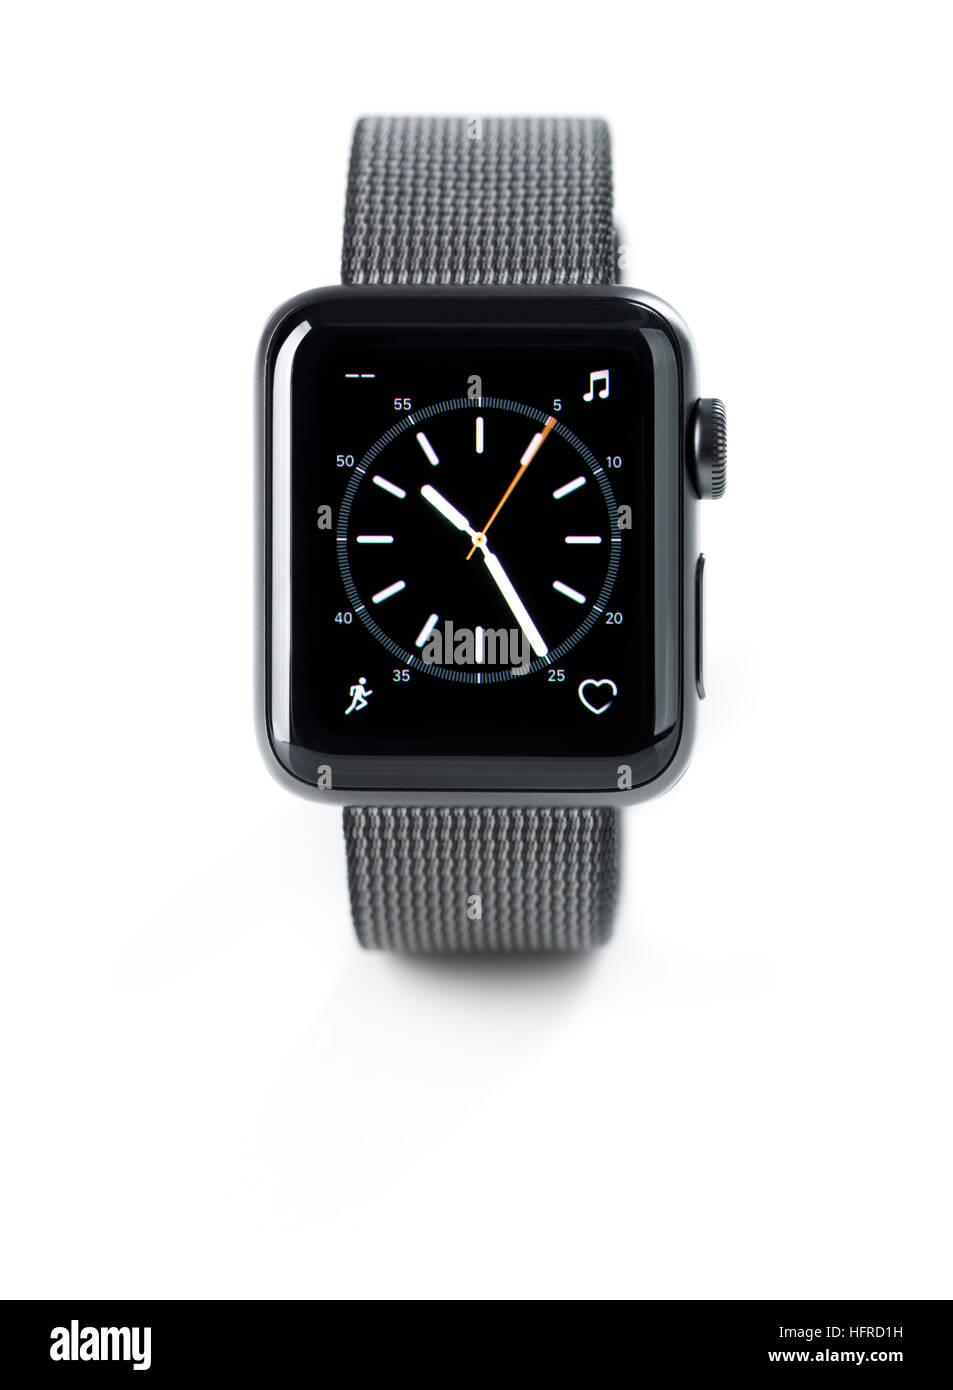 Apple Watch, smartwatch with analog clock dial on display front view - Stock Image